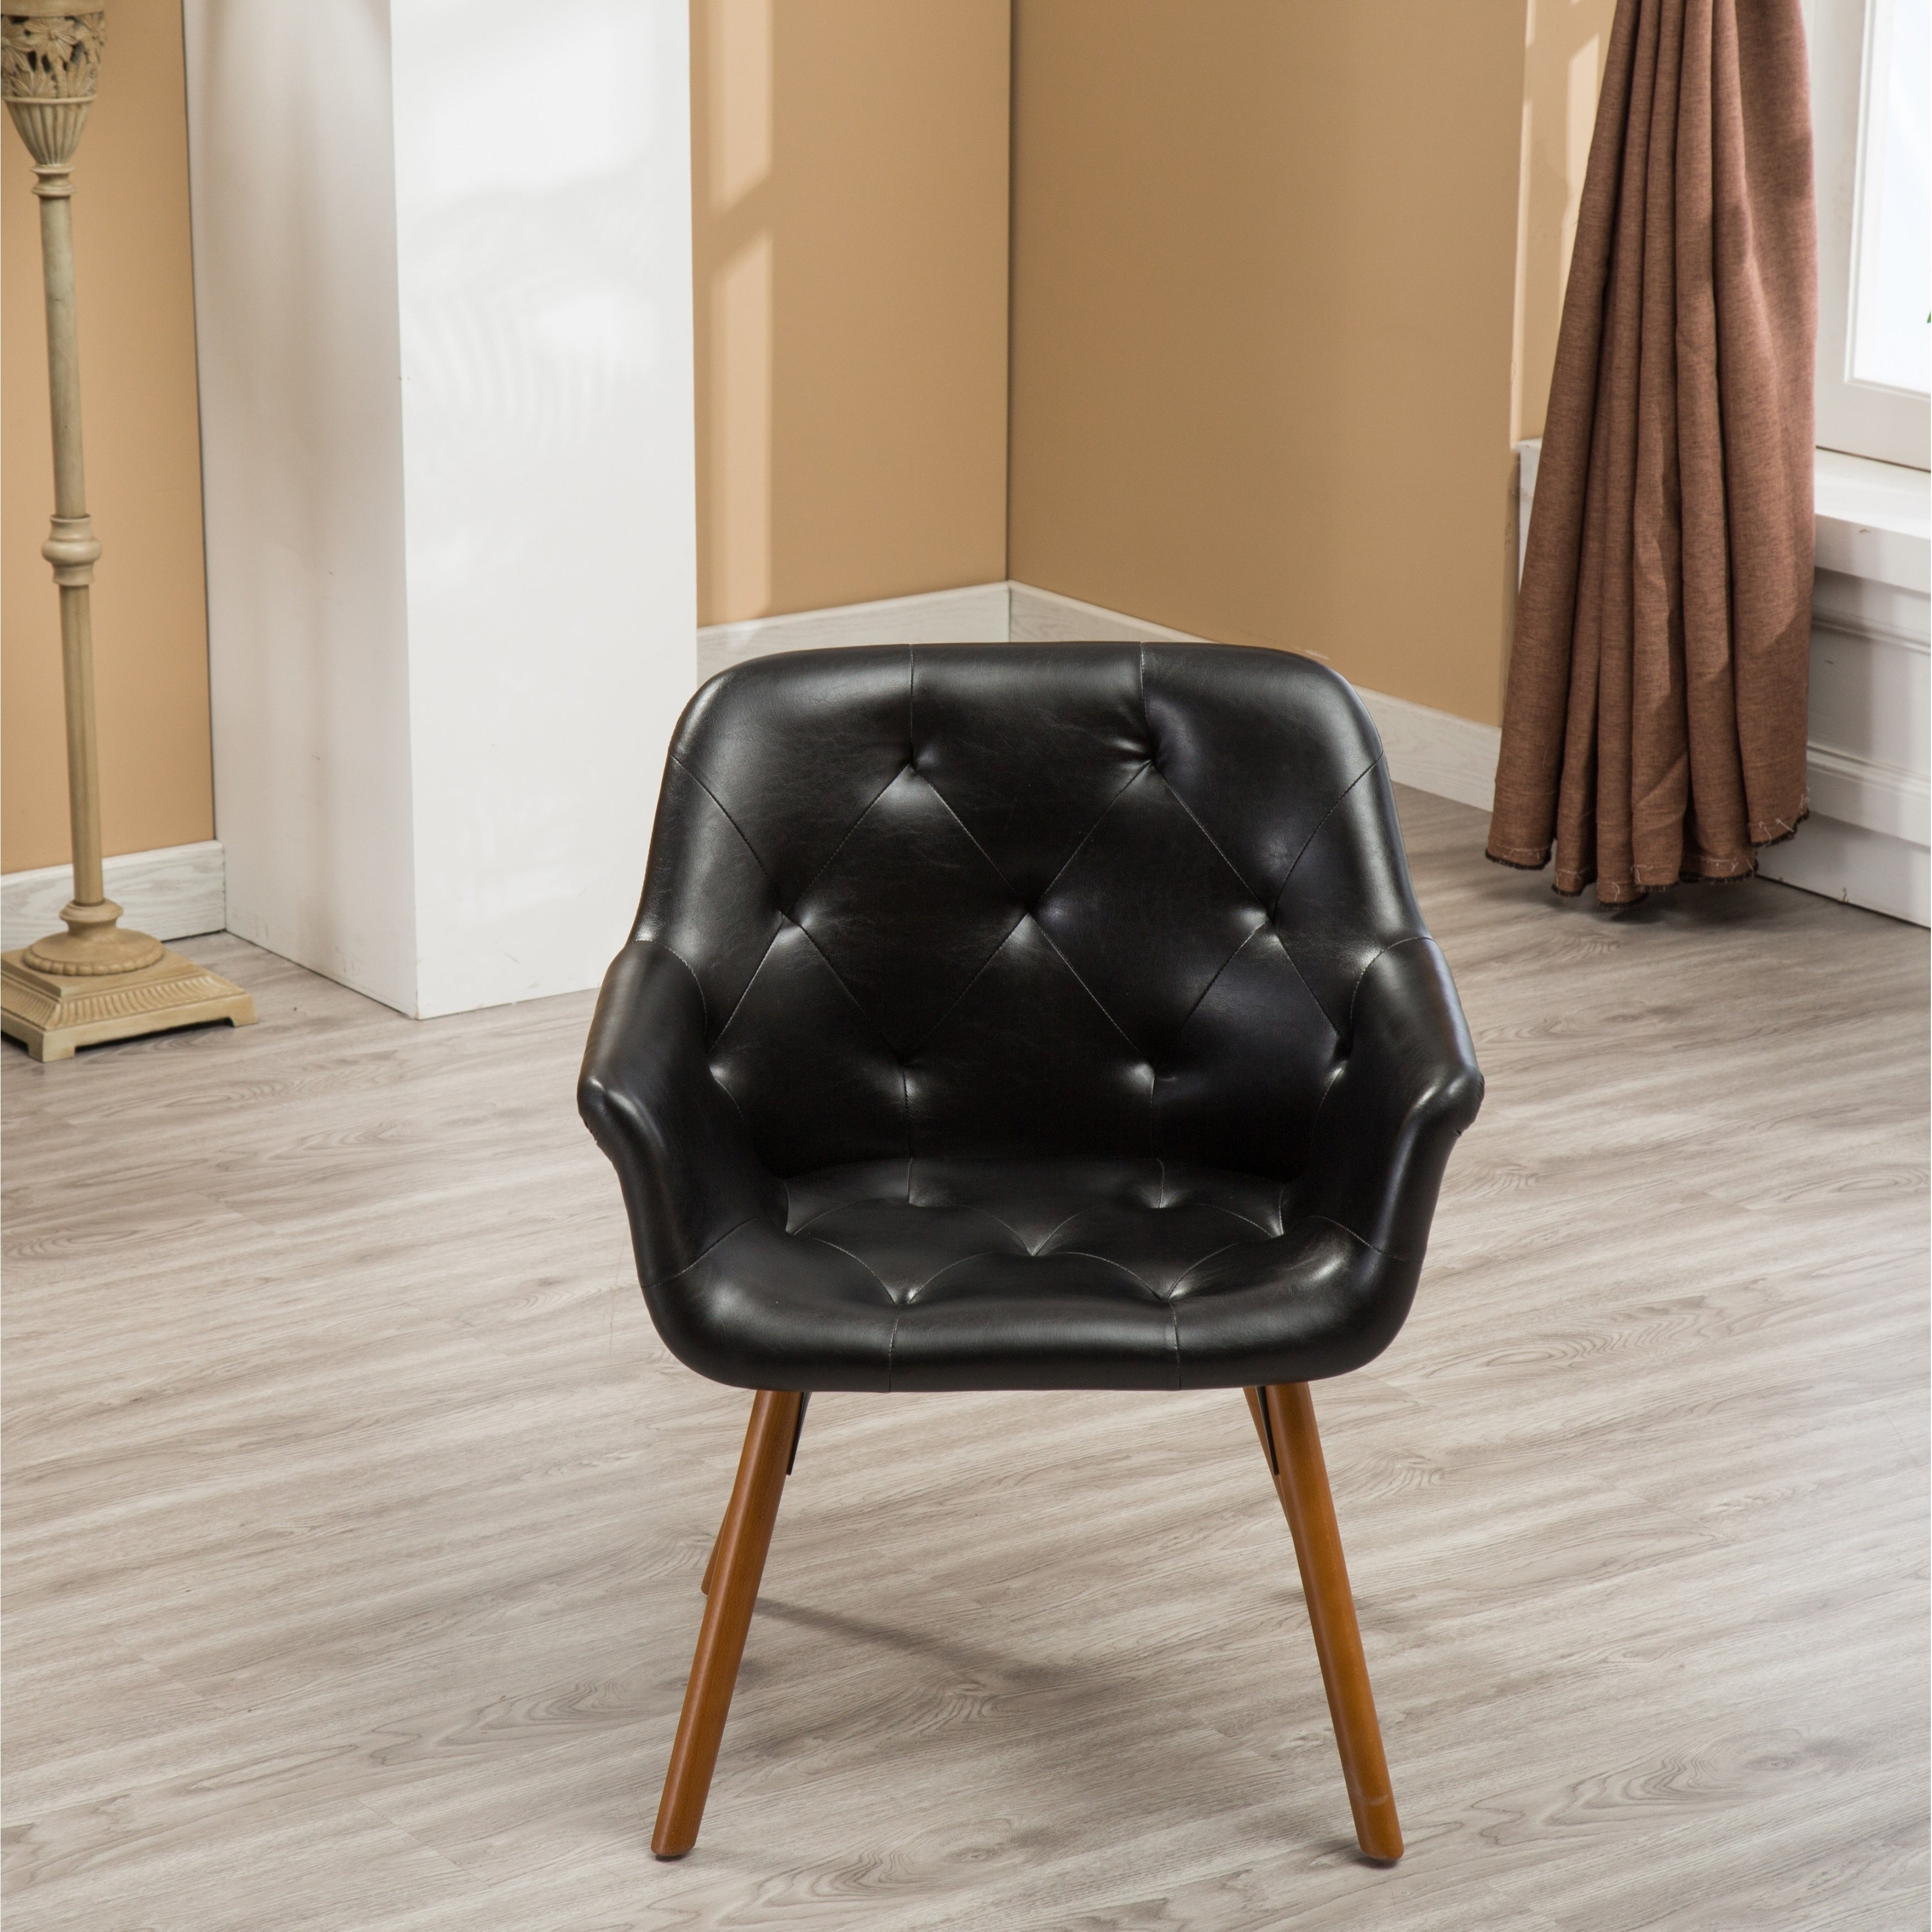 Shop Vauclucy Contemporary Faux Leather Diamond Tufted